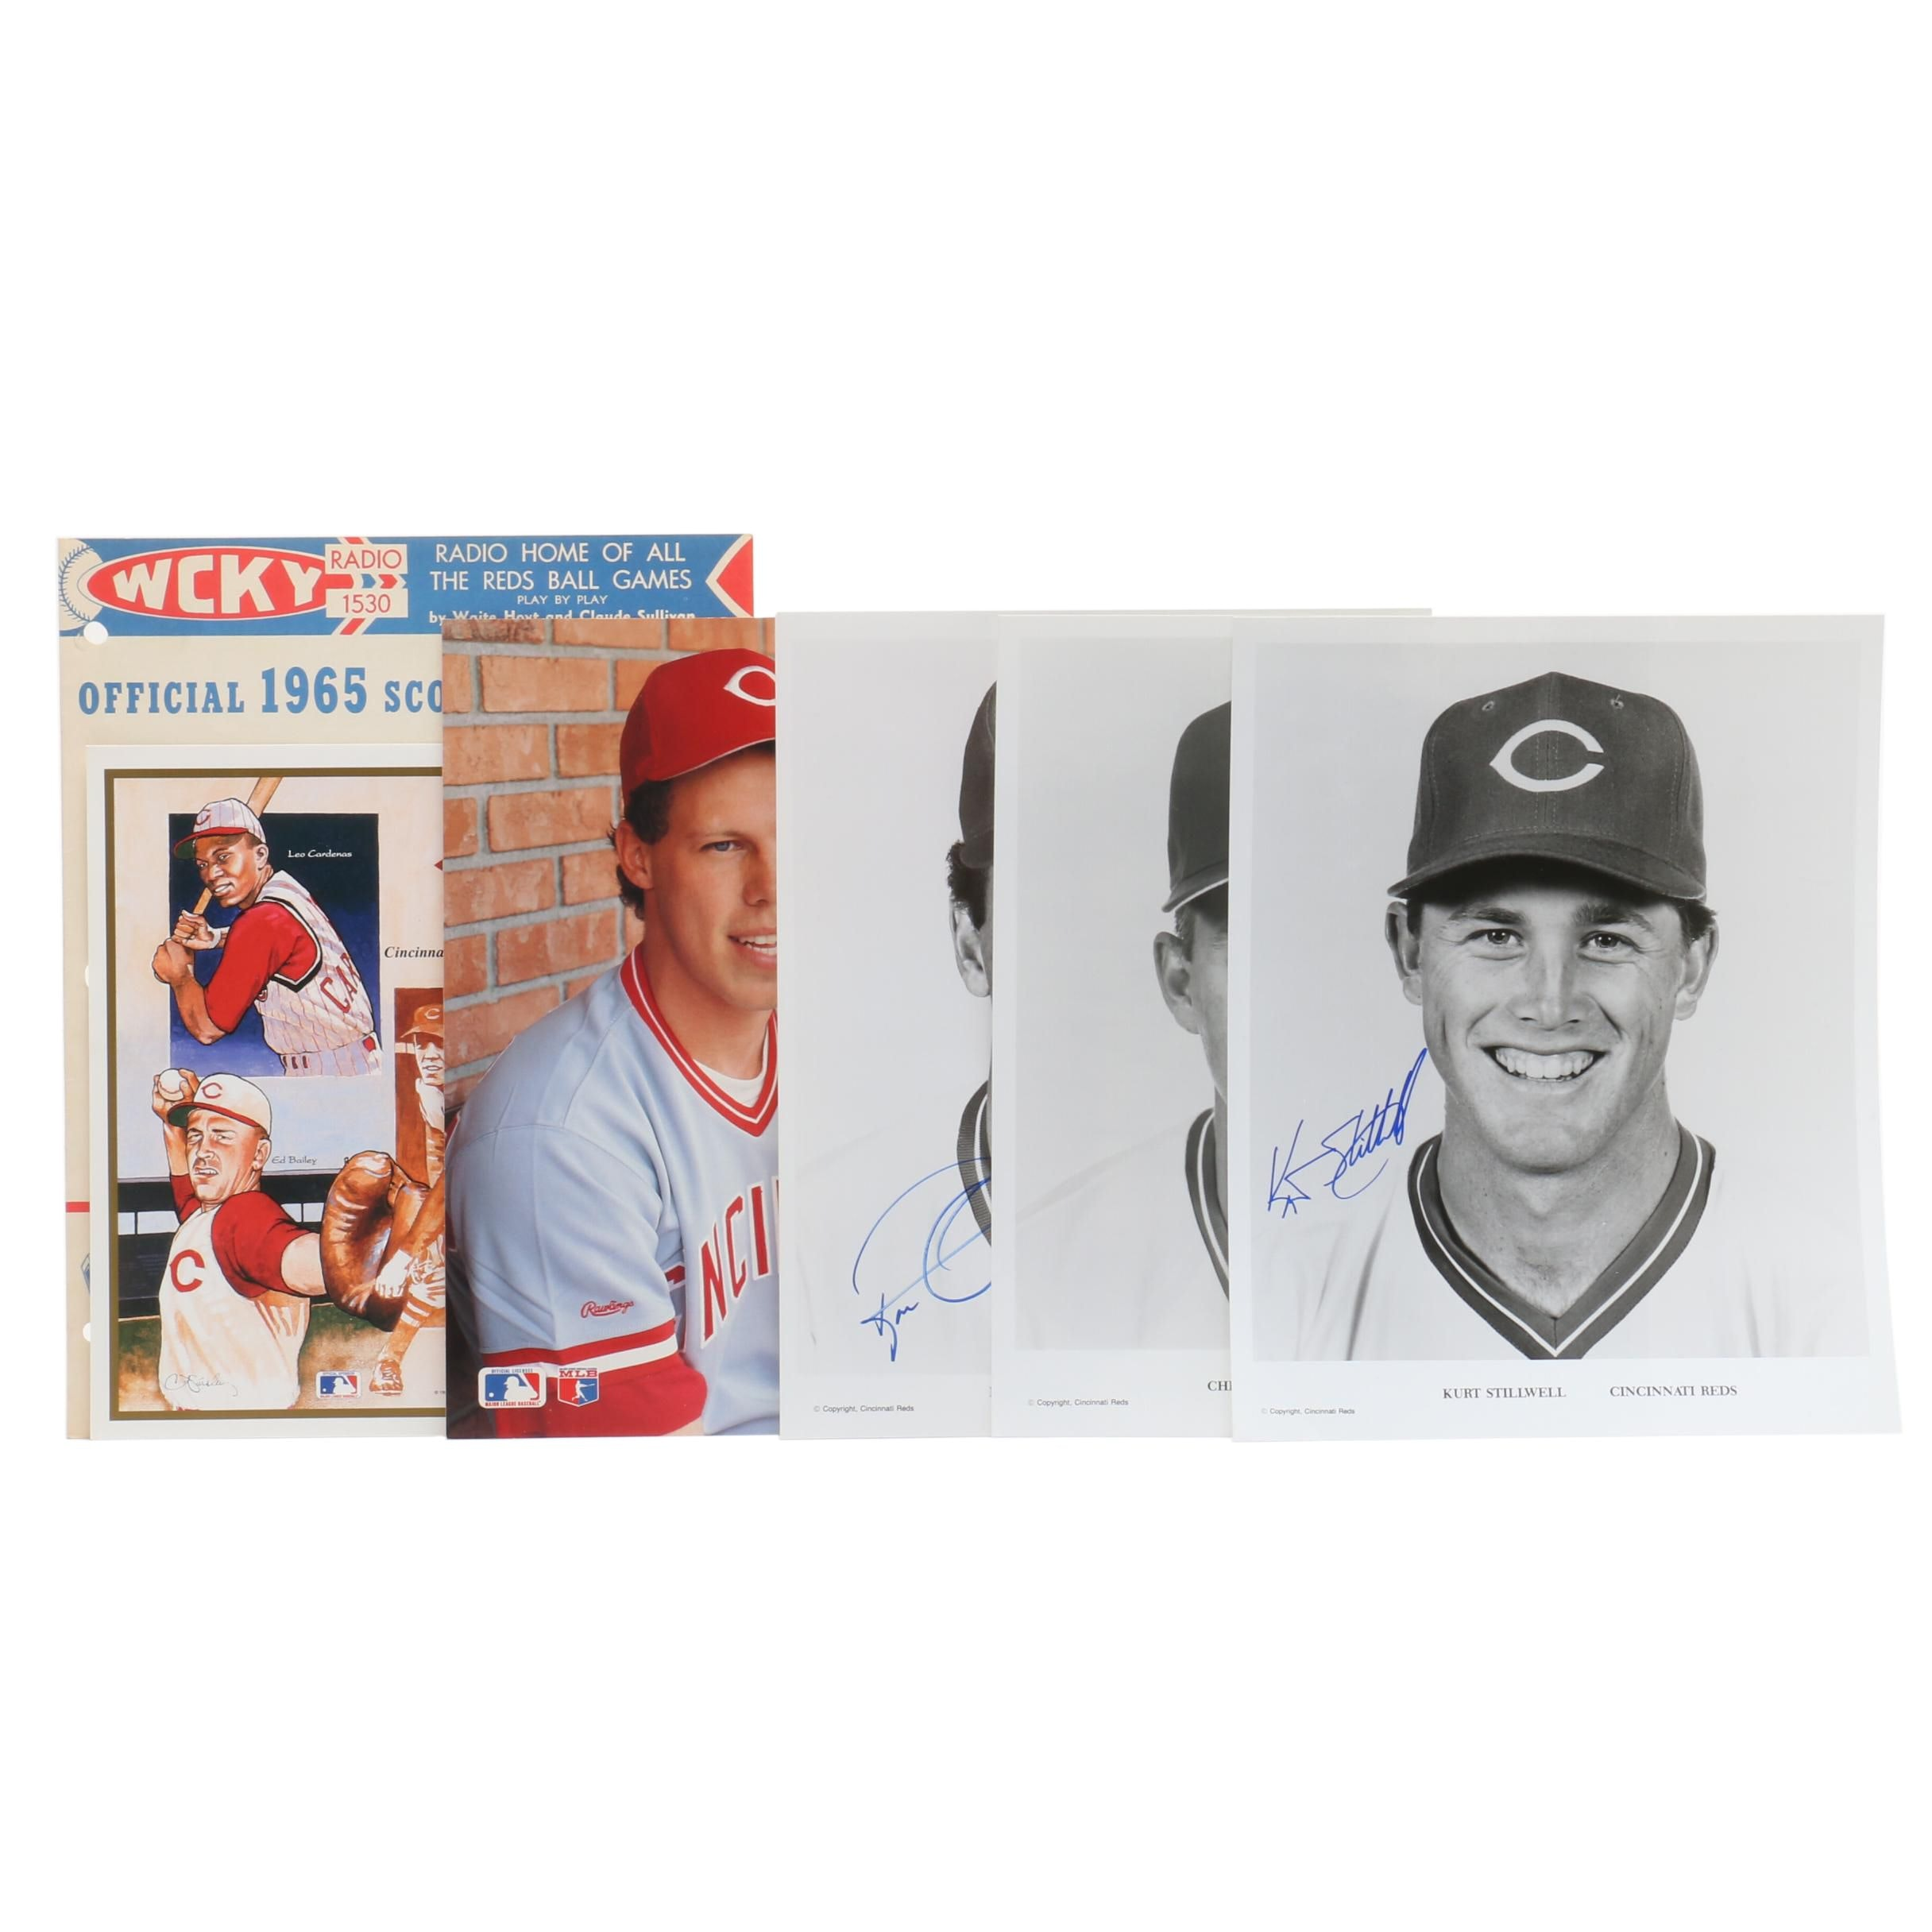 Cincinnati Reds Signed Player Photo Prints and 1965 Scorecard